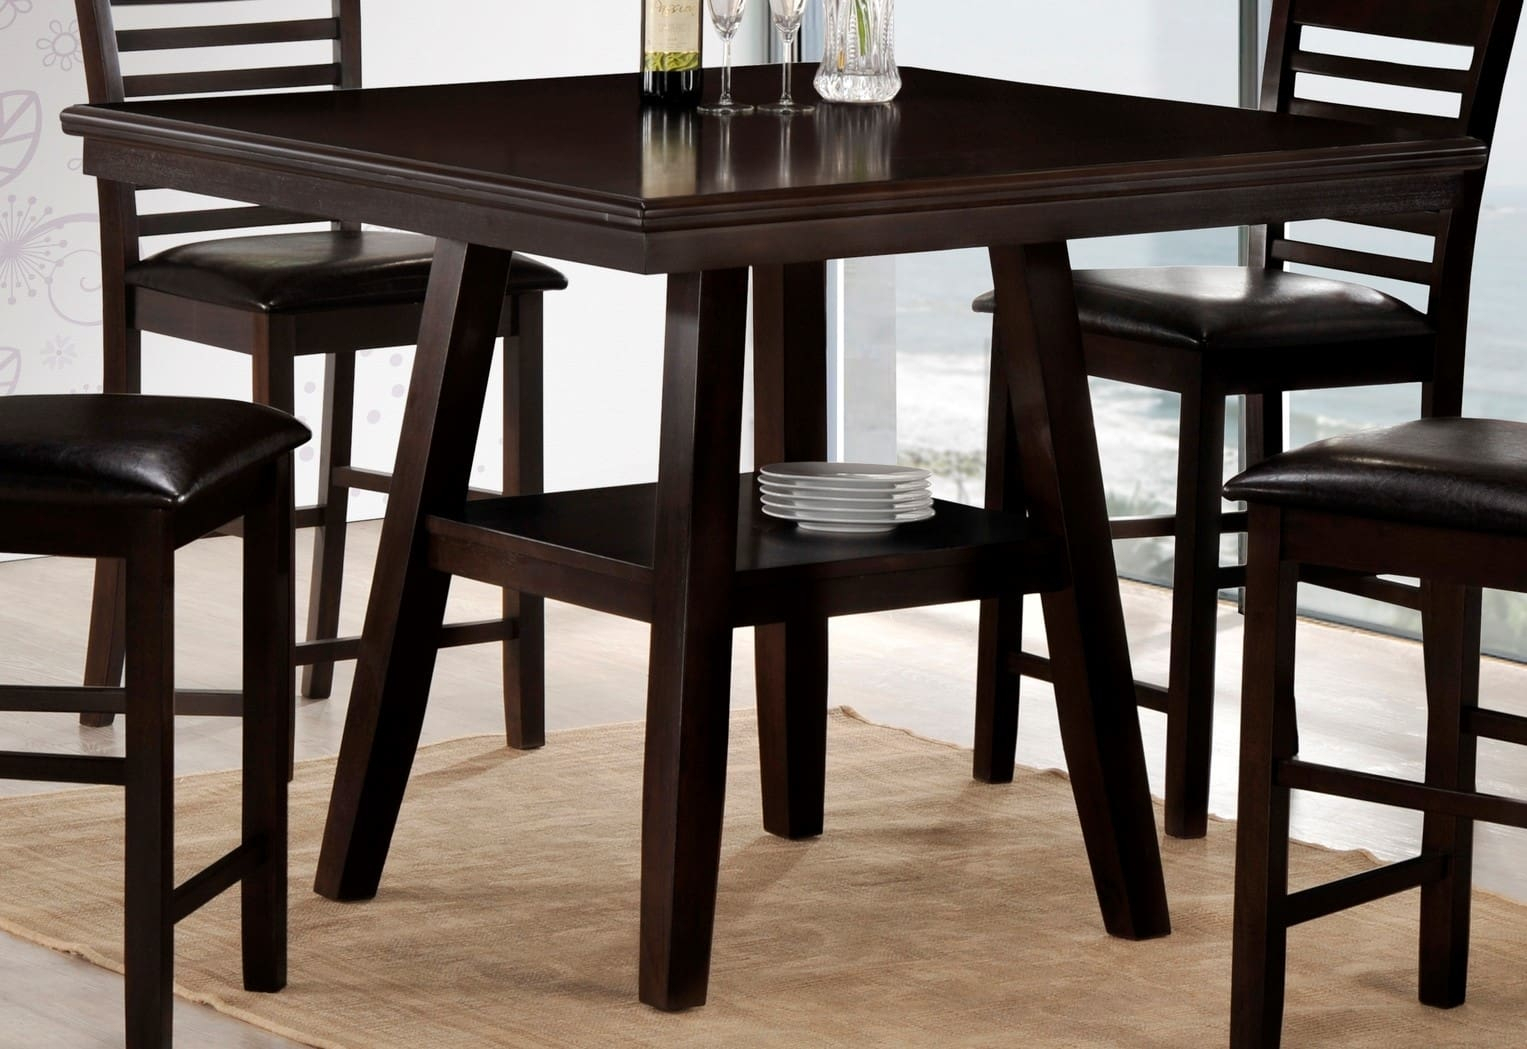 Simmons Upholstery 5007 45 Regarding 2018 Carson Counter Height Tables (View 6 of 25)